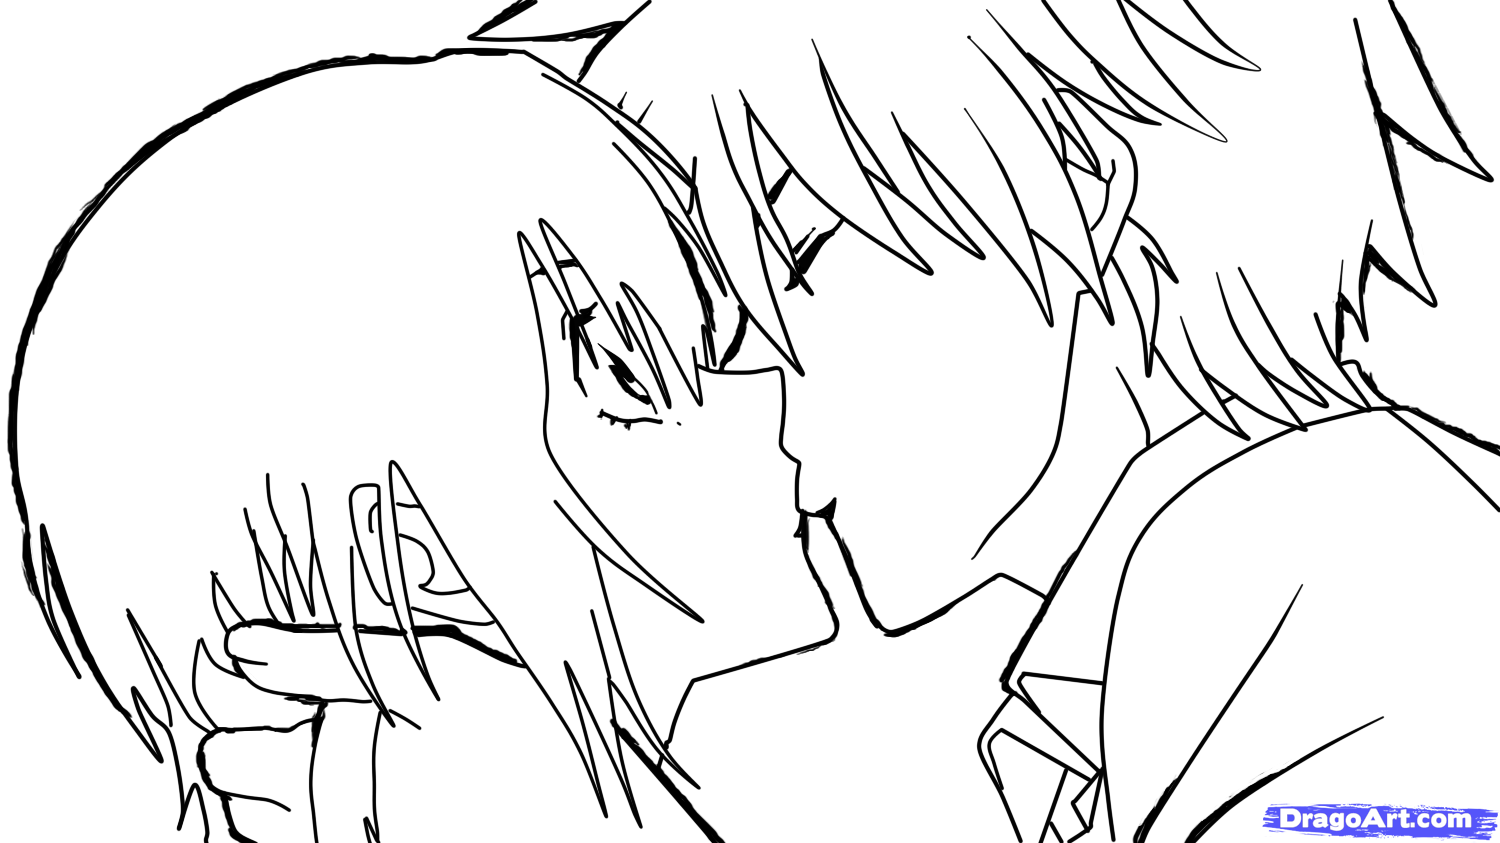 How To Sketch An Anime Kiss Step By Step Anime People Anime Draw Japanese Anime Draw Manga Free Online Drawing Tu Anime Kiss Anime Drawings Anime Lineart